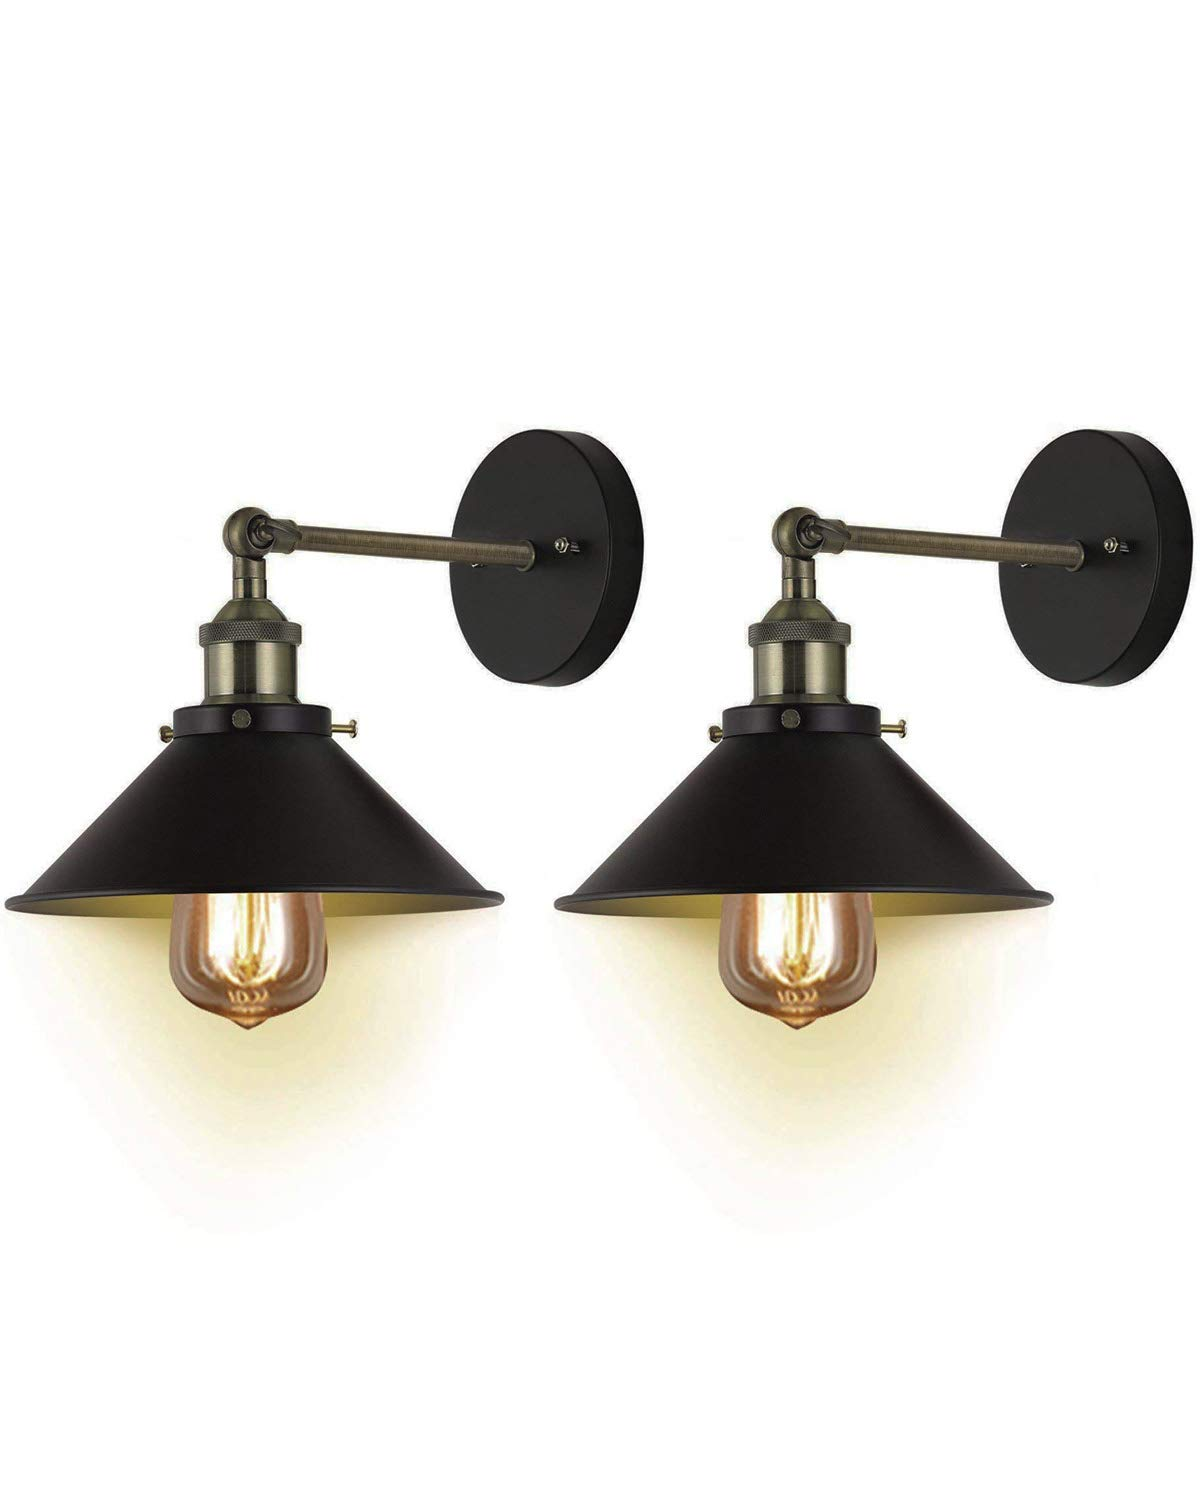 Wall Sconces Set of Two Deep Dream UL Hardwire Industrial Vintage Wall Lamp Fixture,Arm Swing Wall Lights(Bronze,Without Bulbs)